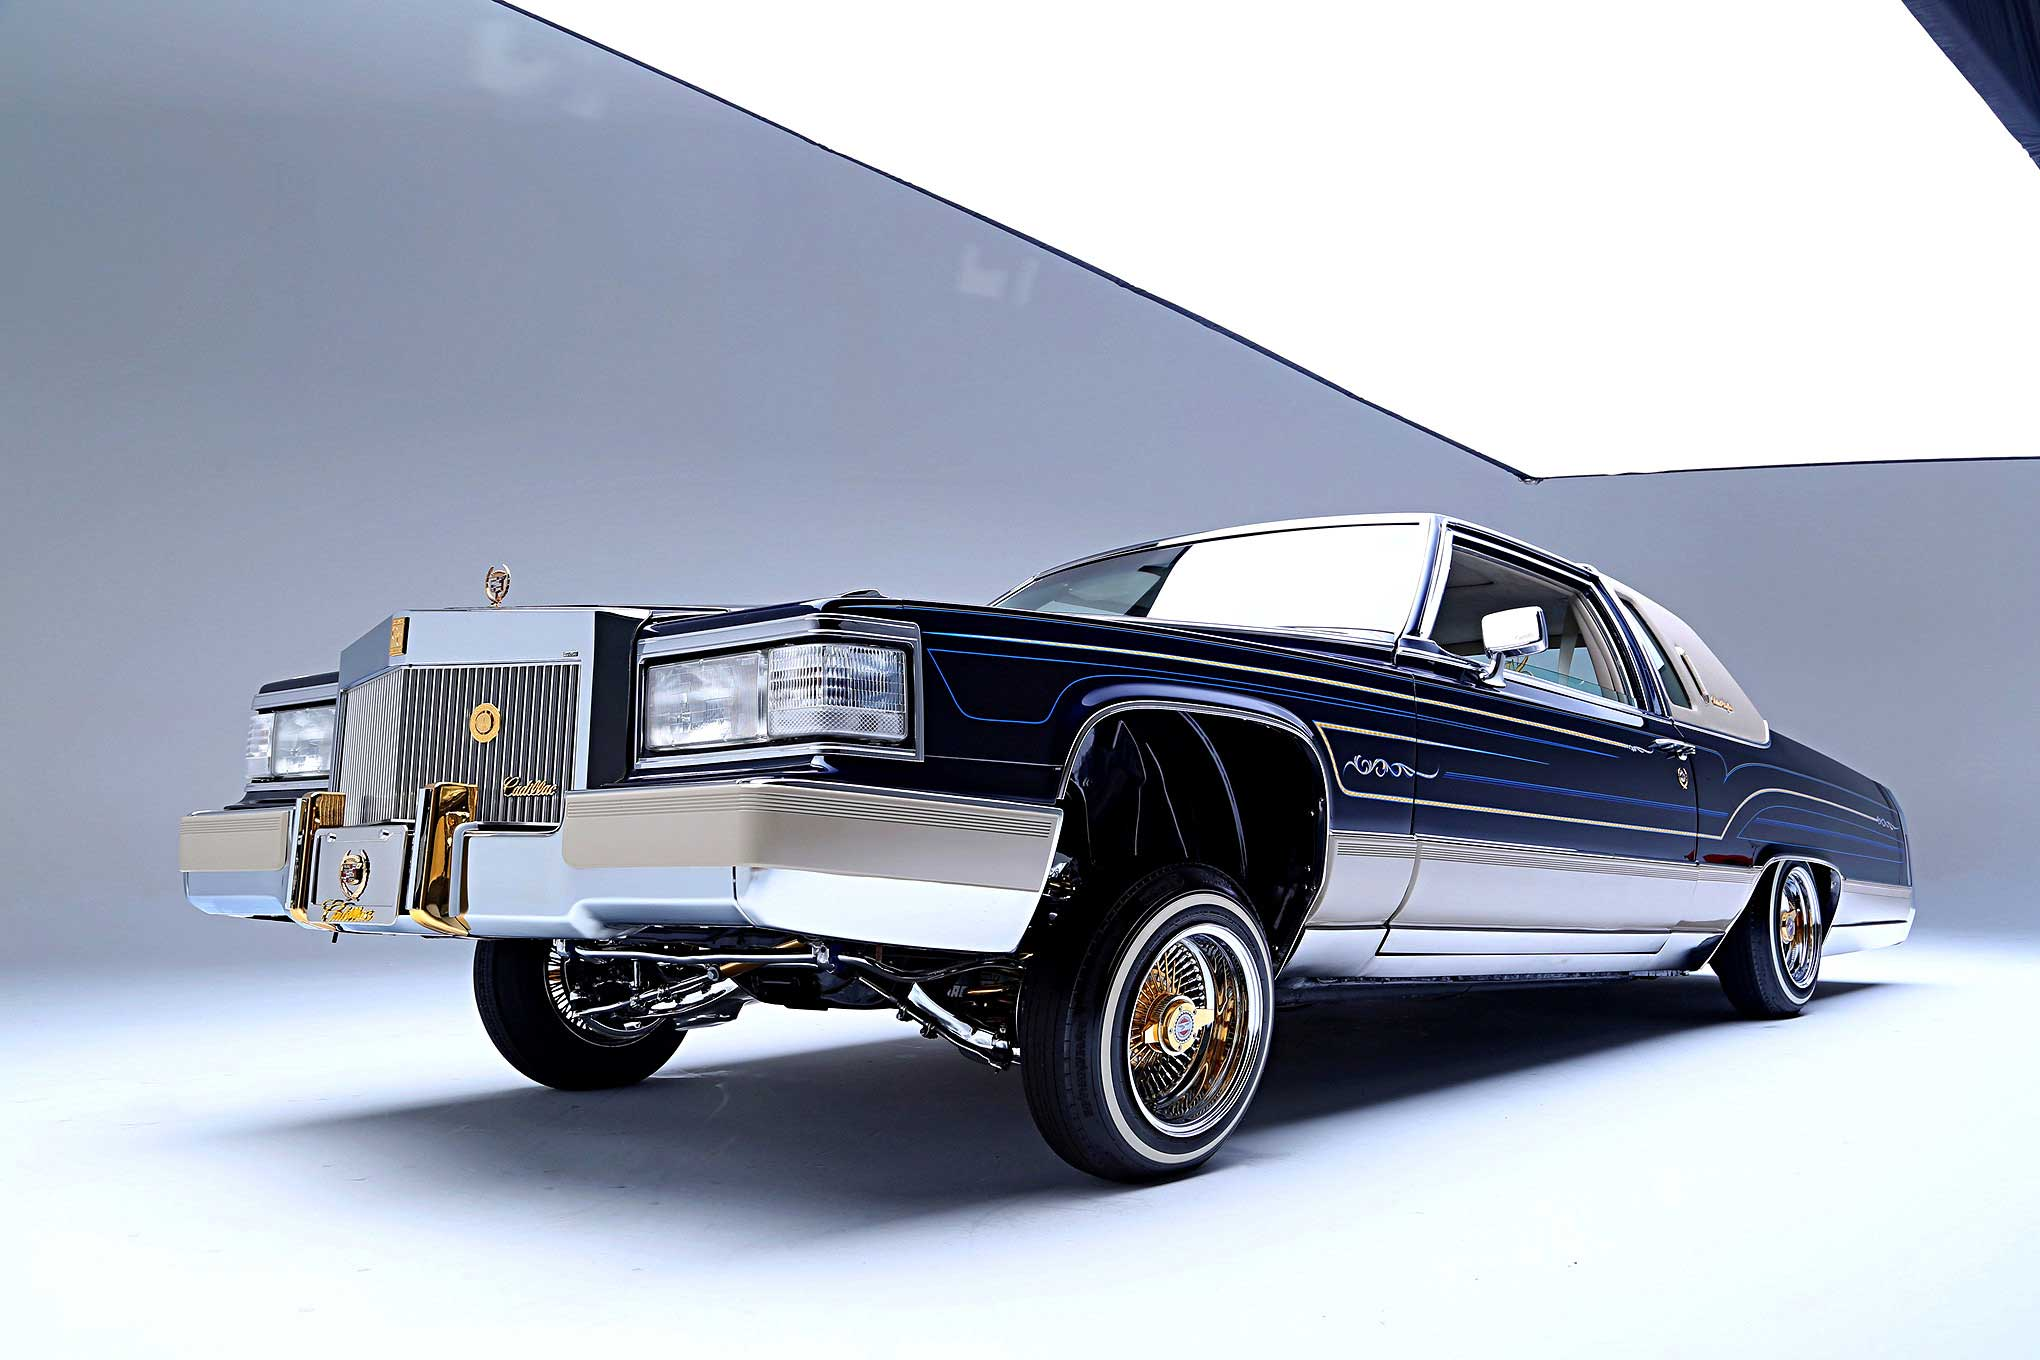 1985 cadillac fleetwood brougham show this to your painter 1985 cadillac fleetwood brougham show